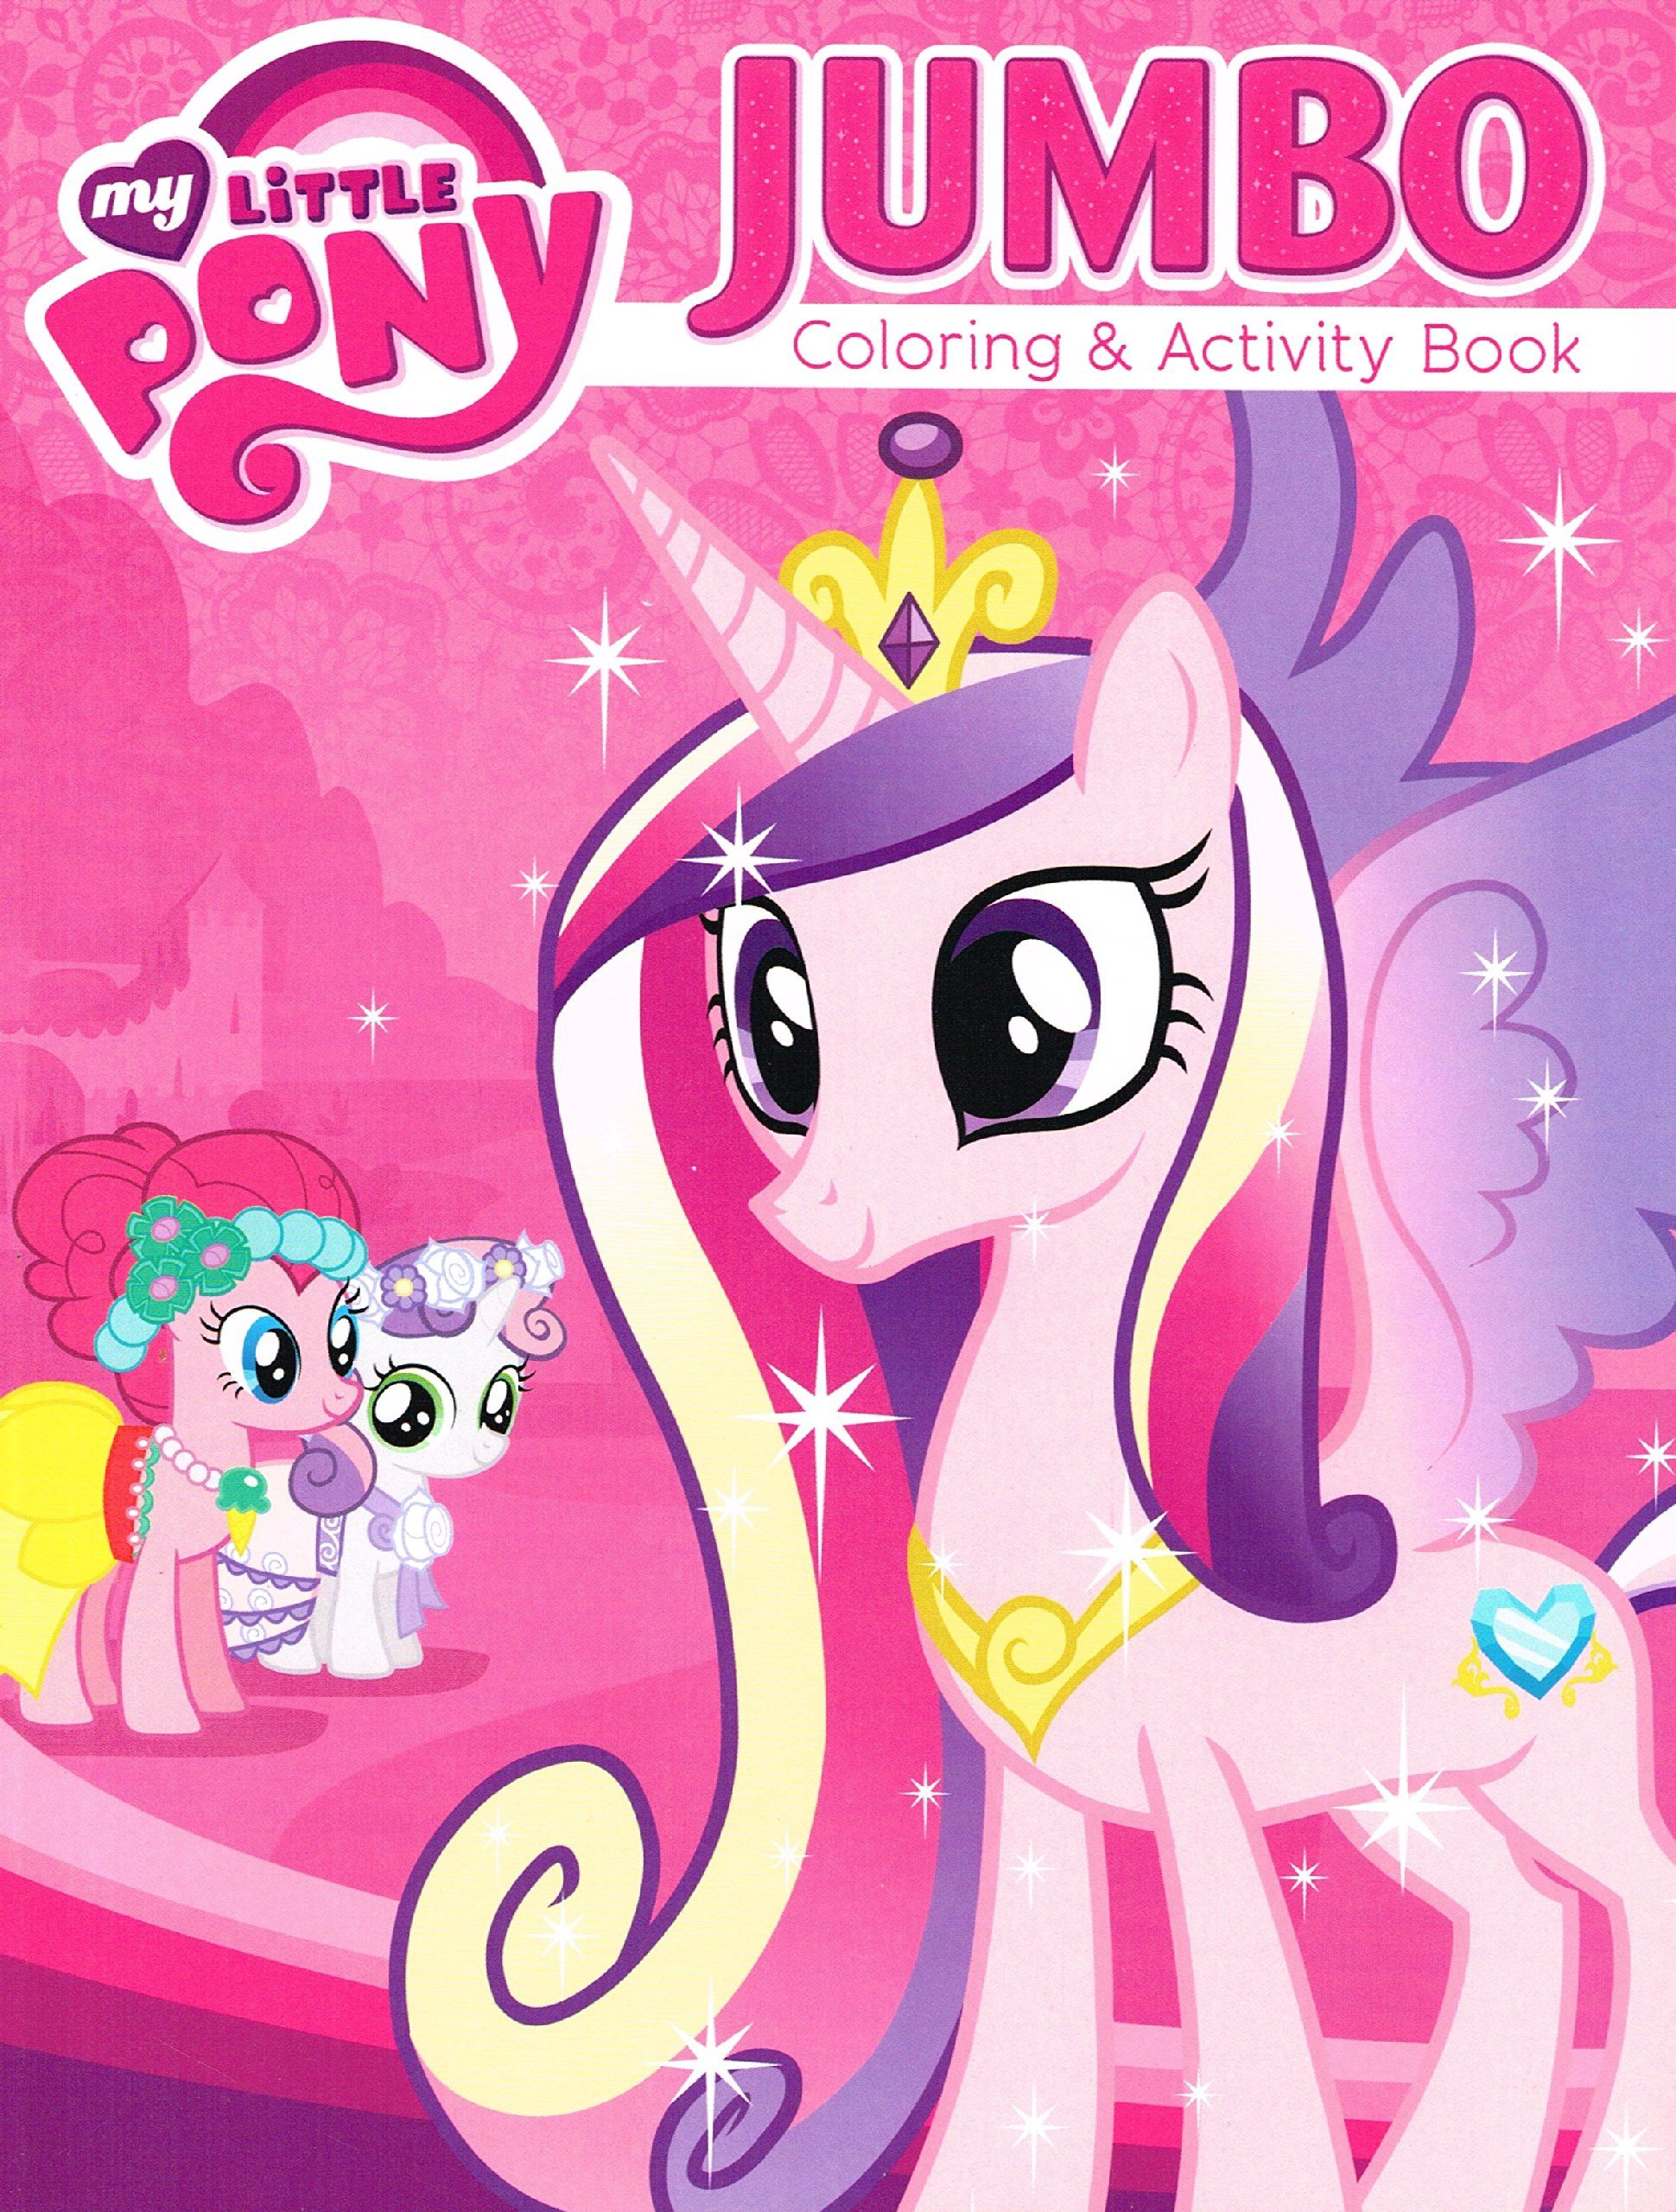 - My Little Pony® Coloring And Activity Book Set - Featuring